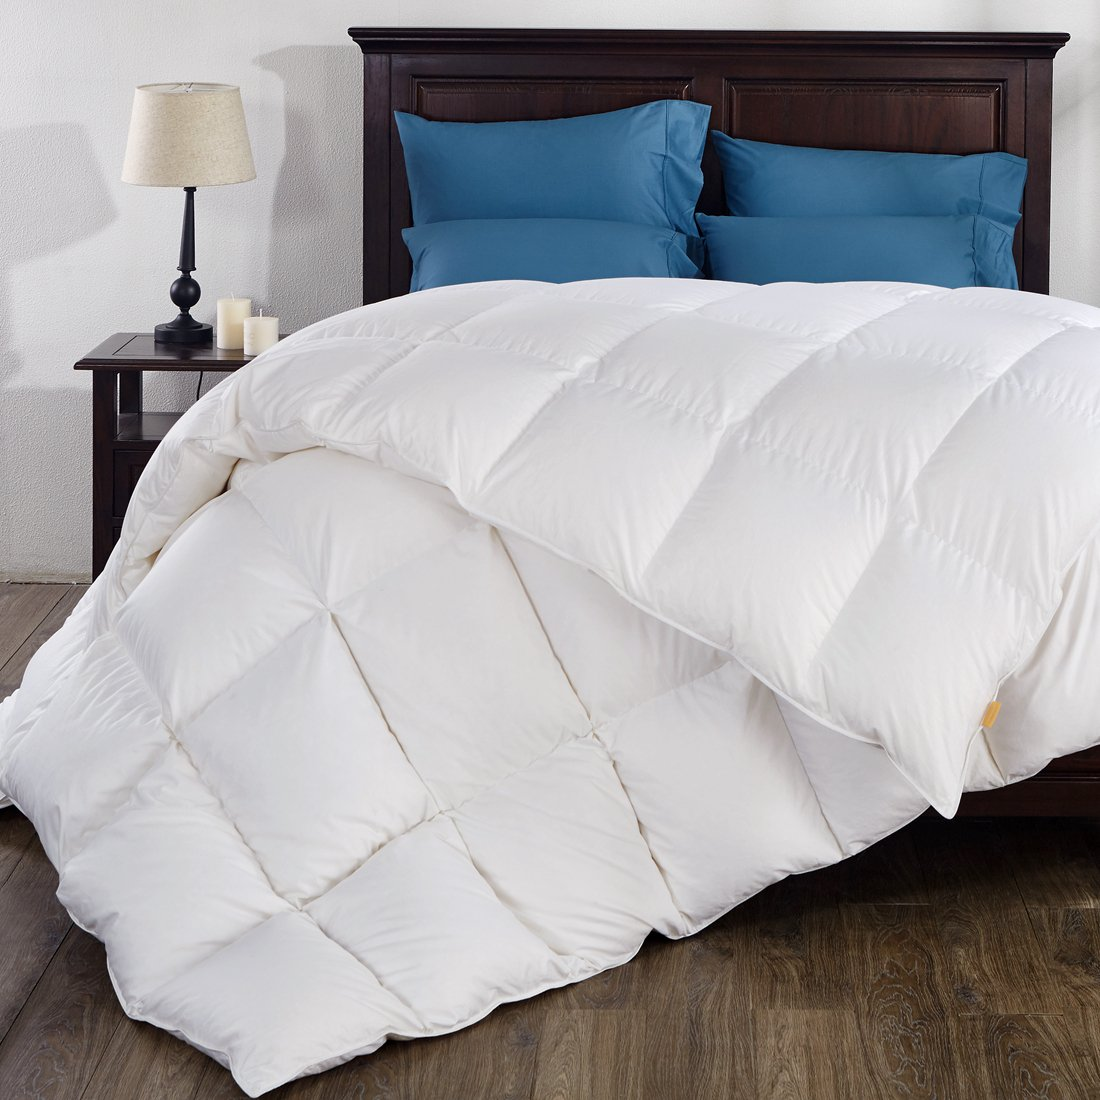 black cover and duvets teal bedspreads gold size comforters checked white sets dark cream cool queen duet photoslack set designs of king green sheet pink buy bedding bedroom covers pillowcaseedding full modern grey duvet quilt sheets striped friday uk comforter